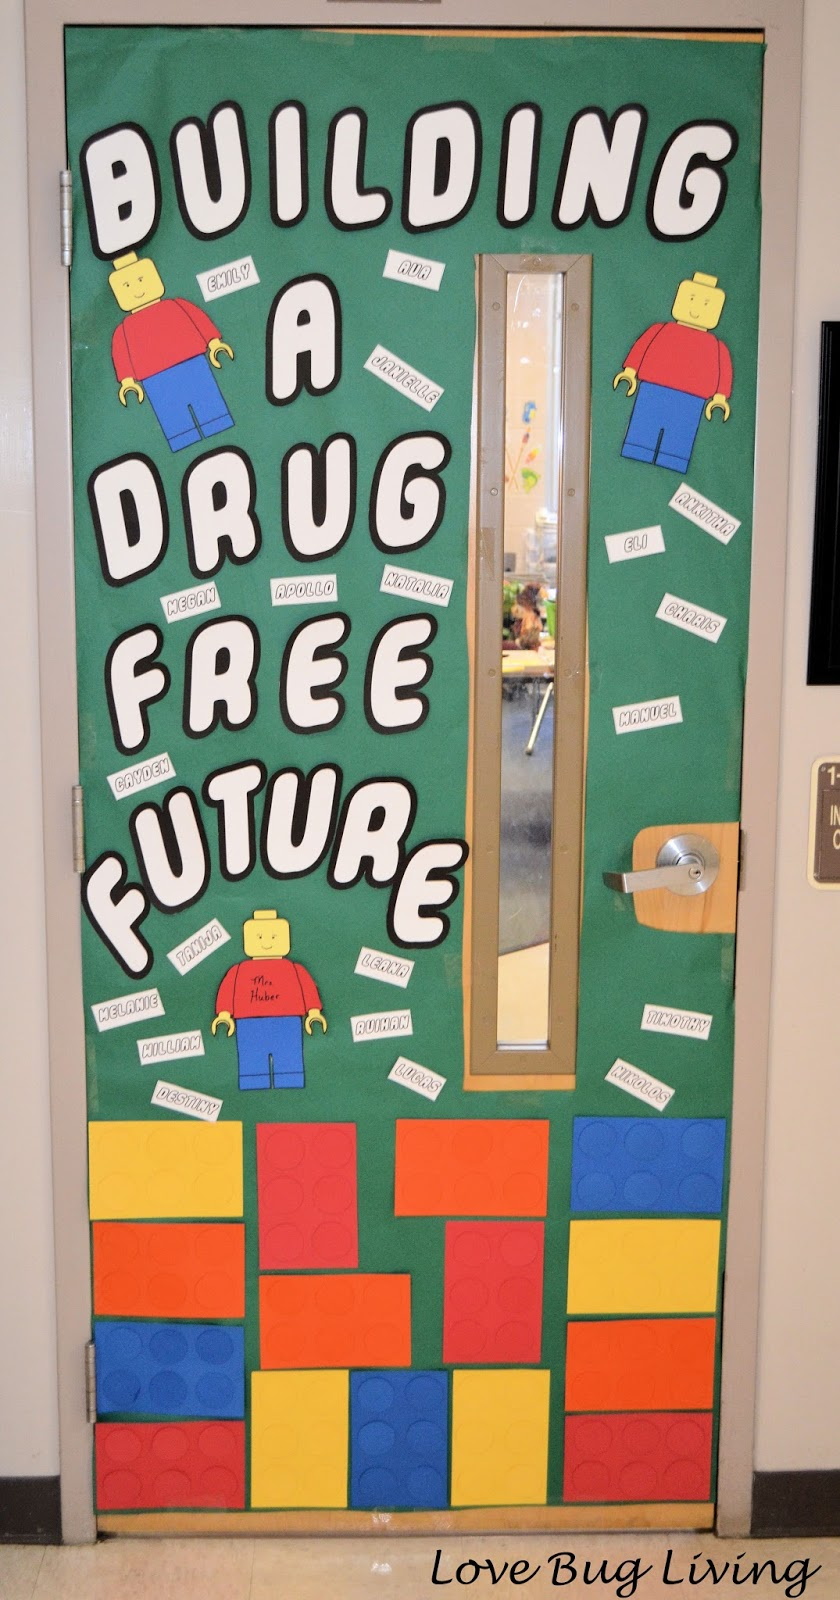 Love Bug Living: Red Ribbon Week Lego Door Decorations